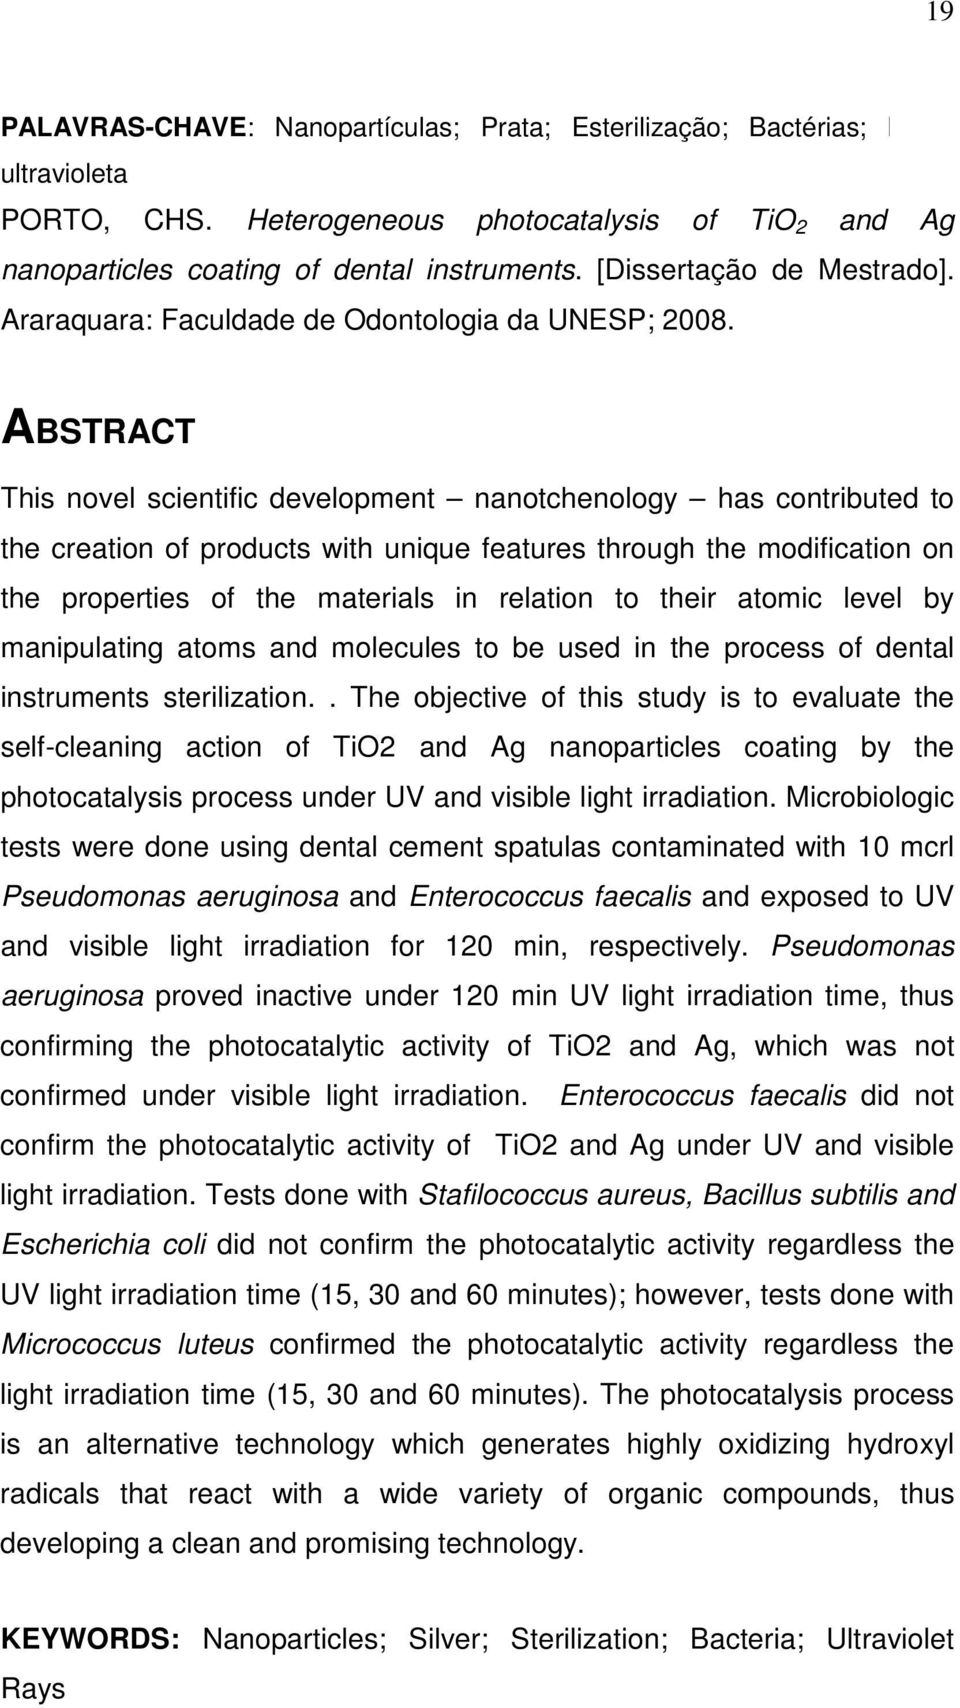 ABSTRACT This novel scientific development nanotchenology has contributed to the creation of products with unique features through the modification on the properties of the materials in relation to